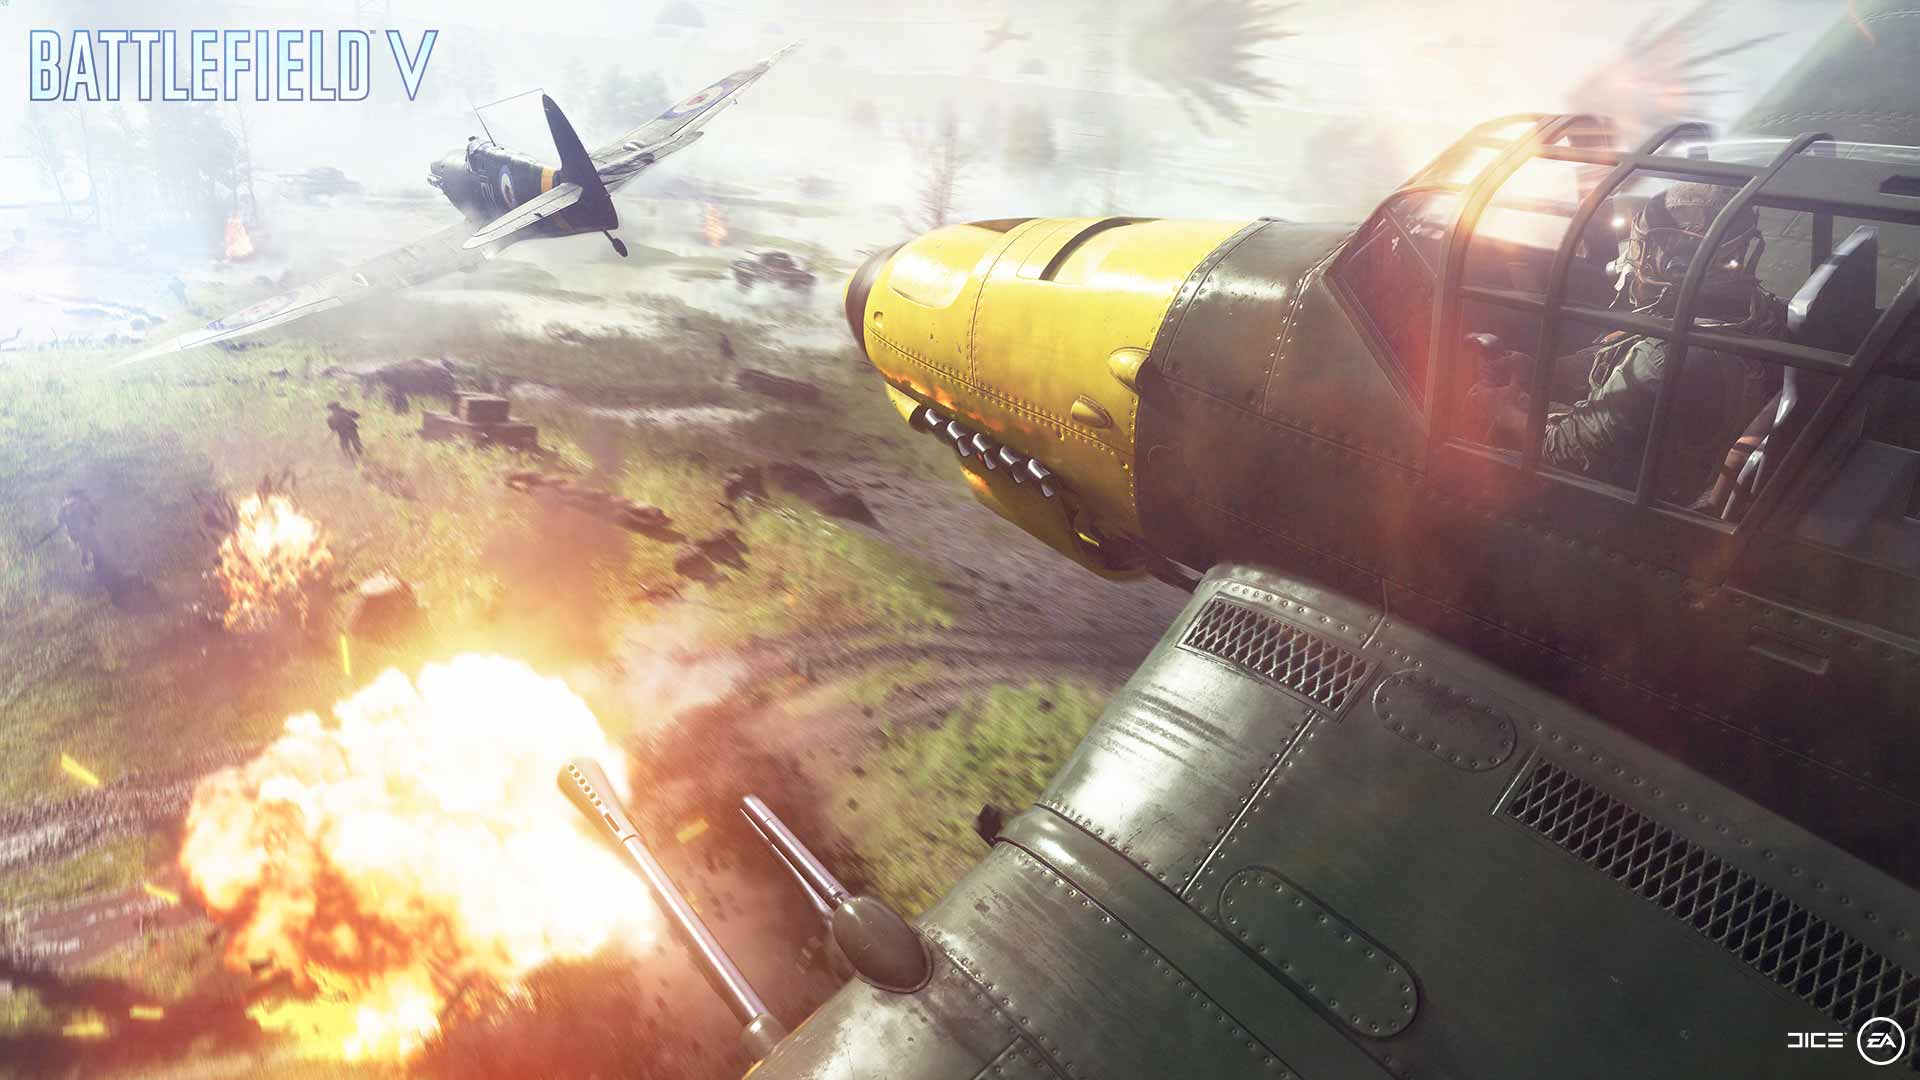 Battlefield V Press Image